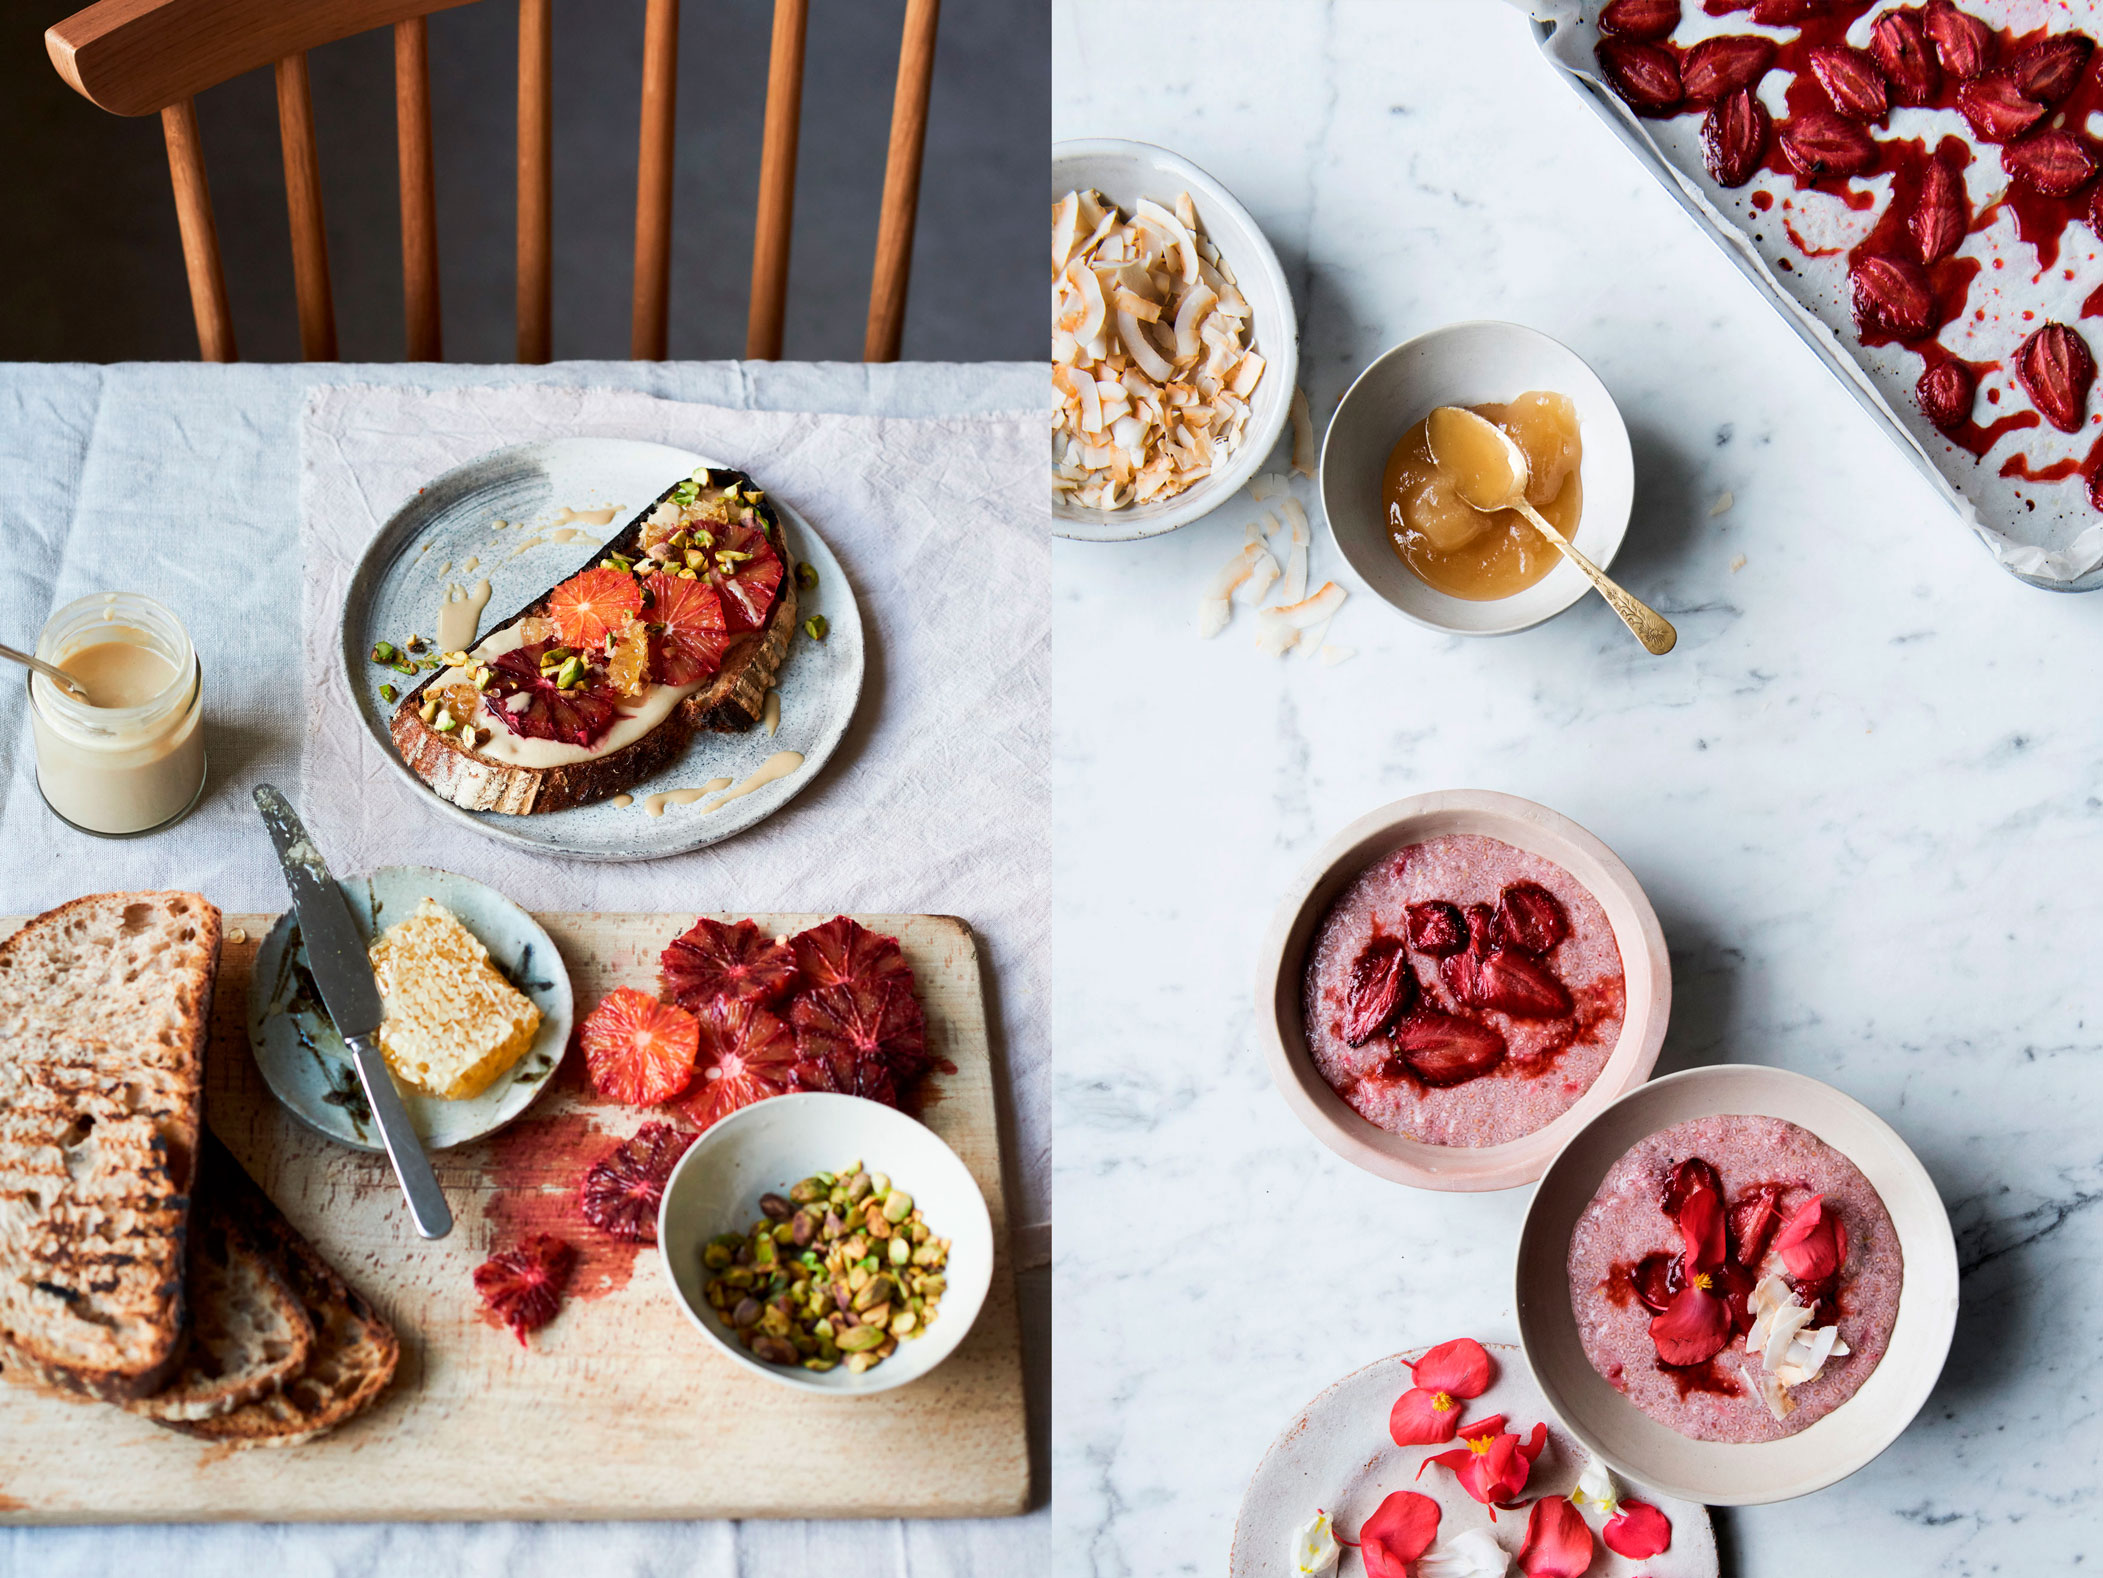 SUMMER FOOD STYLING AND PHOTOGRAPHY WORKSHOP - 31st May & 1st June 2019, £800